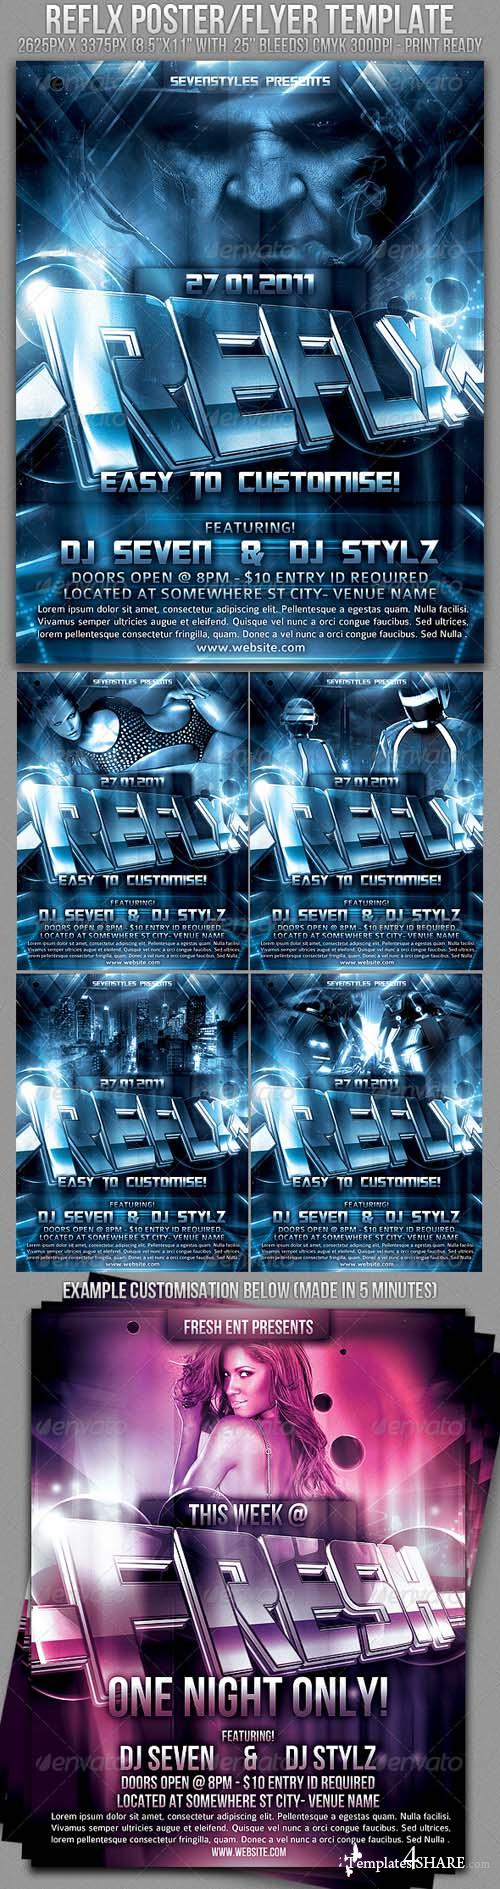 Graphicriver Reflx Poster/Flyer Template